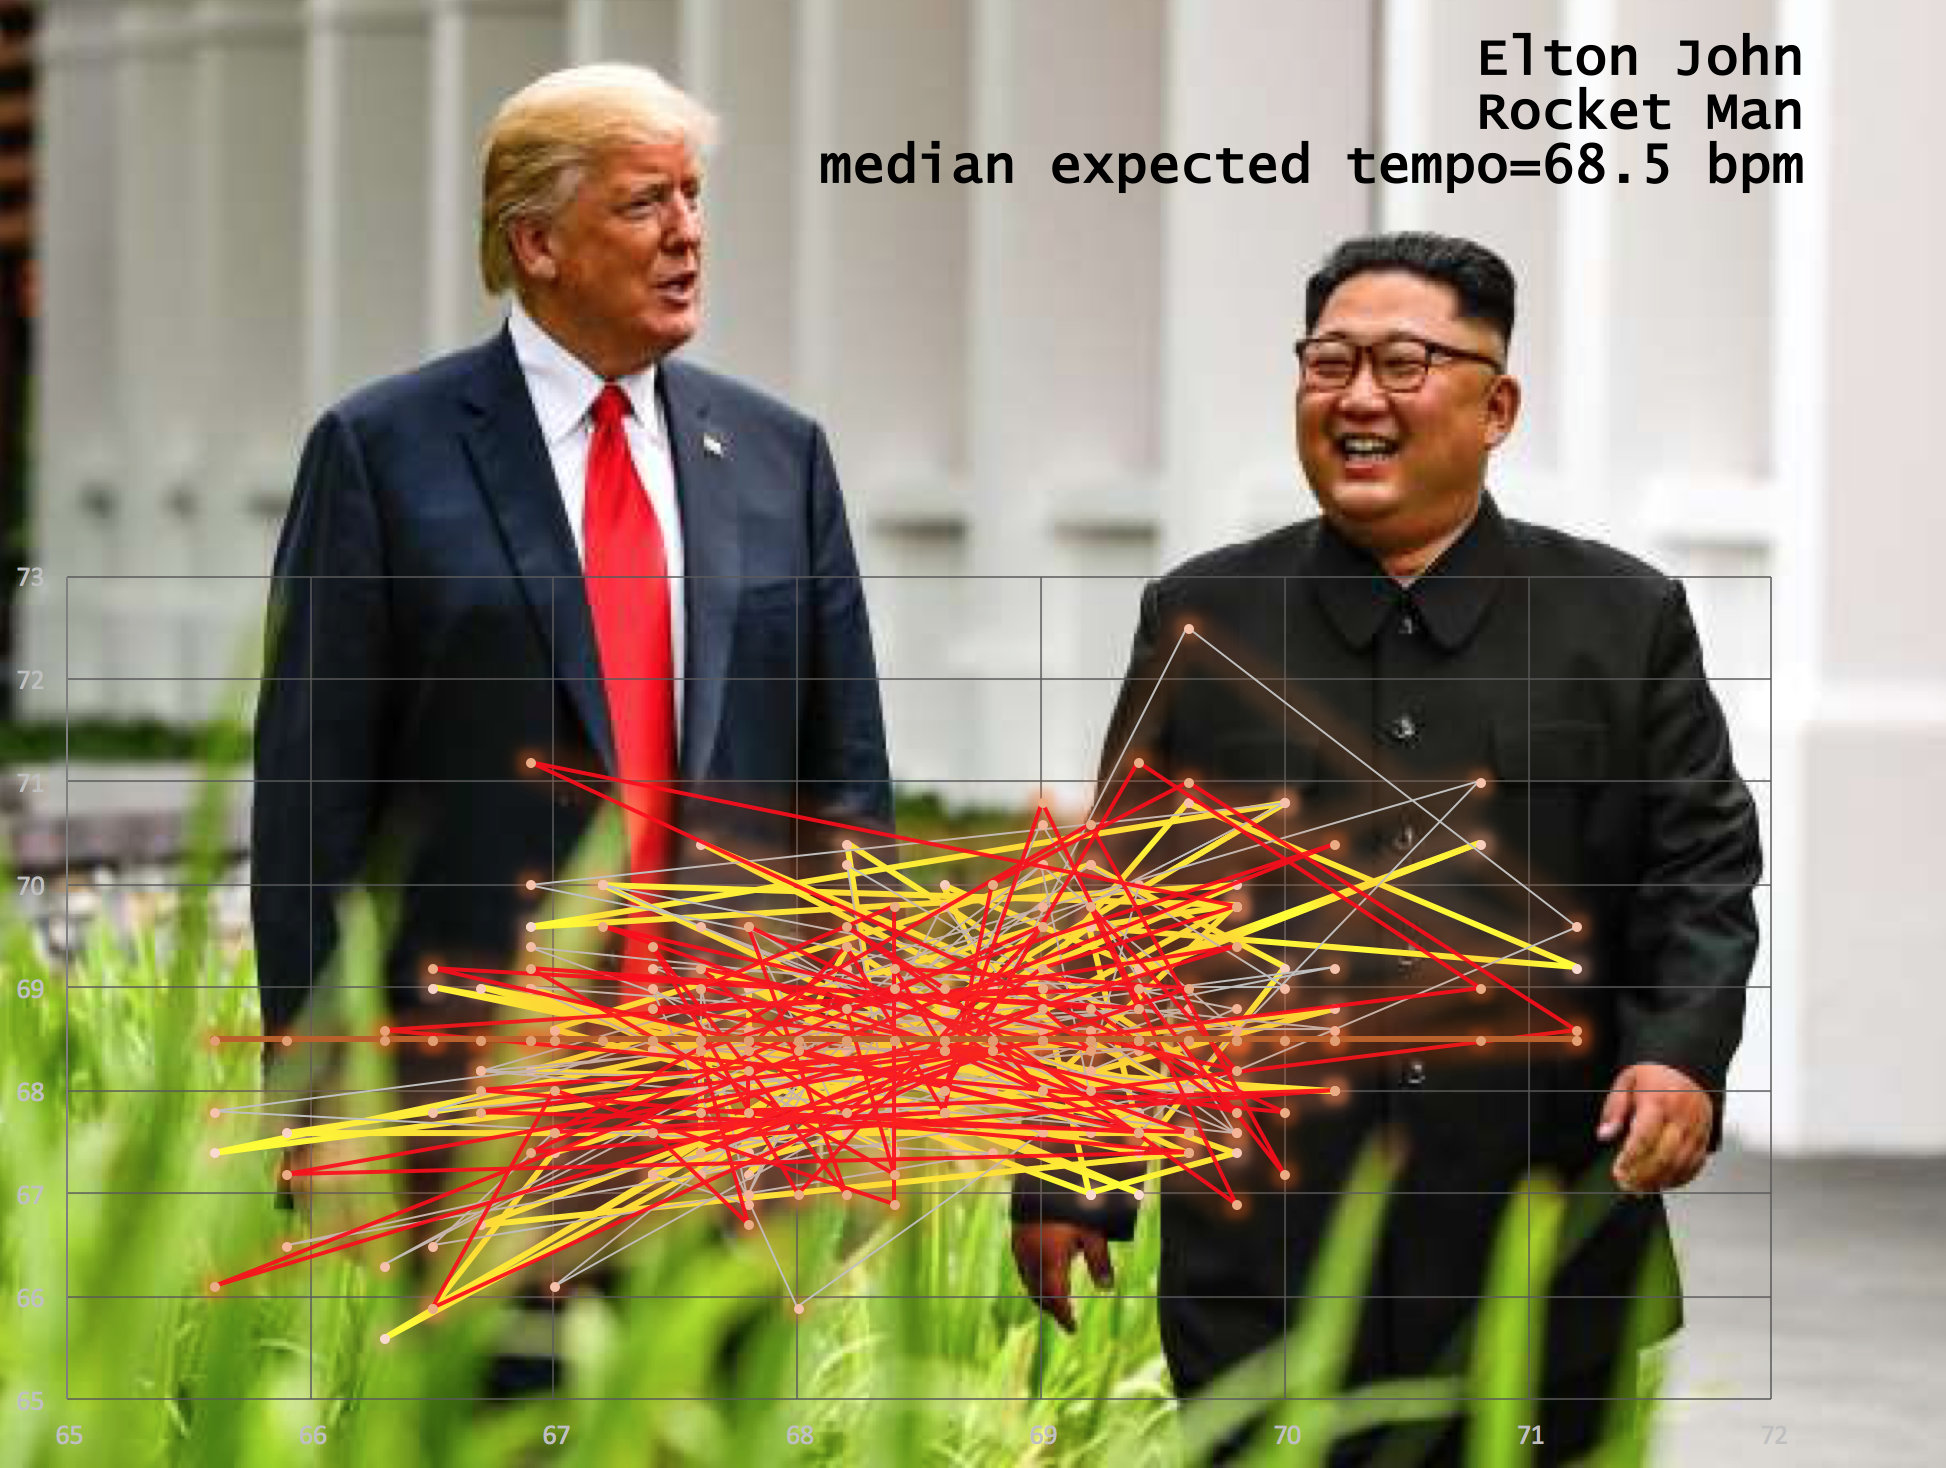 Elton-John-Rocket-Man-matherton-harmonic-speed-map-Kim-Trump